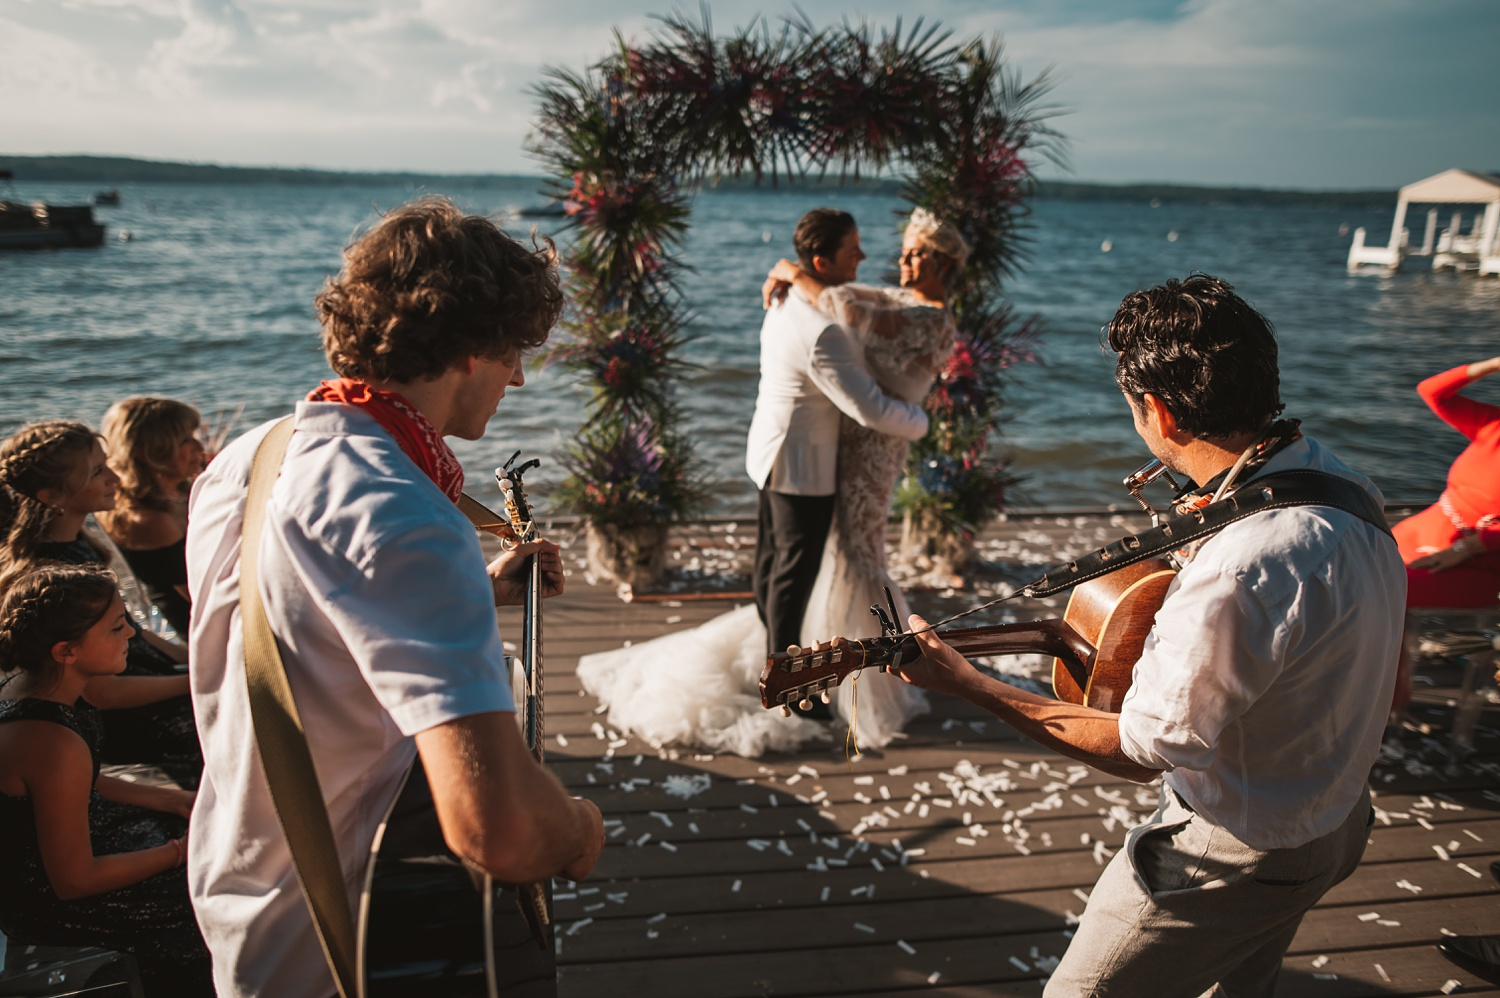 Lake Geneva Micro Wedding - The Adamkovi ceremony on deck first dance with a live guitar players band